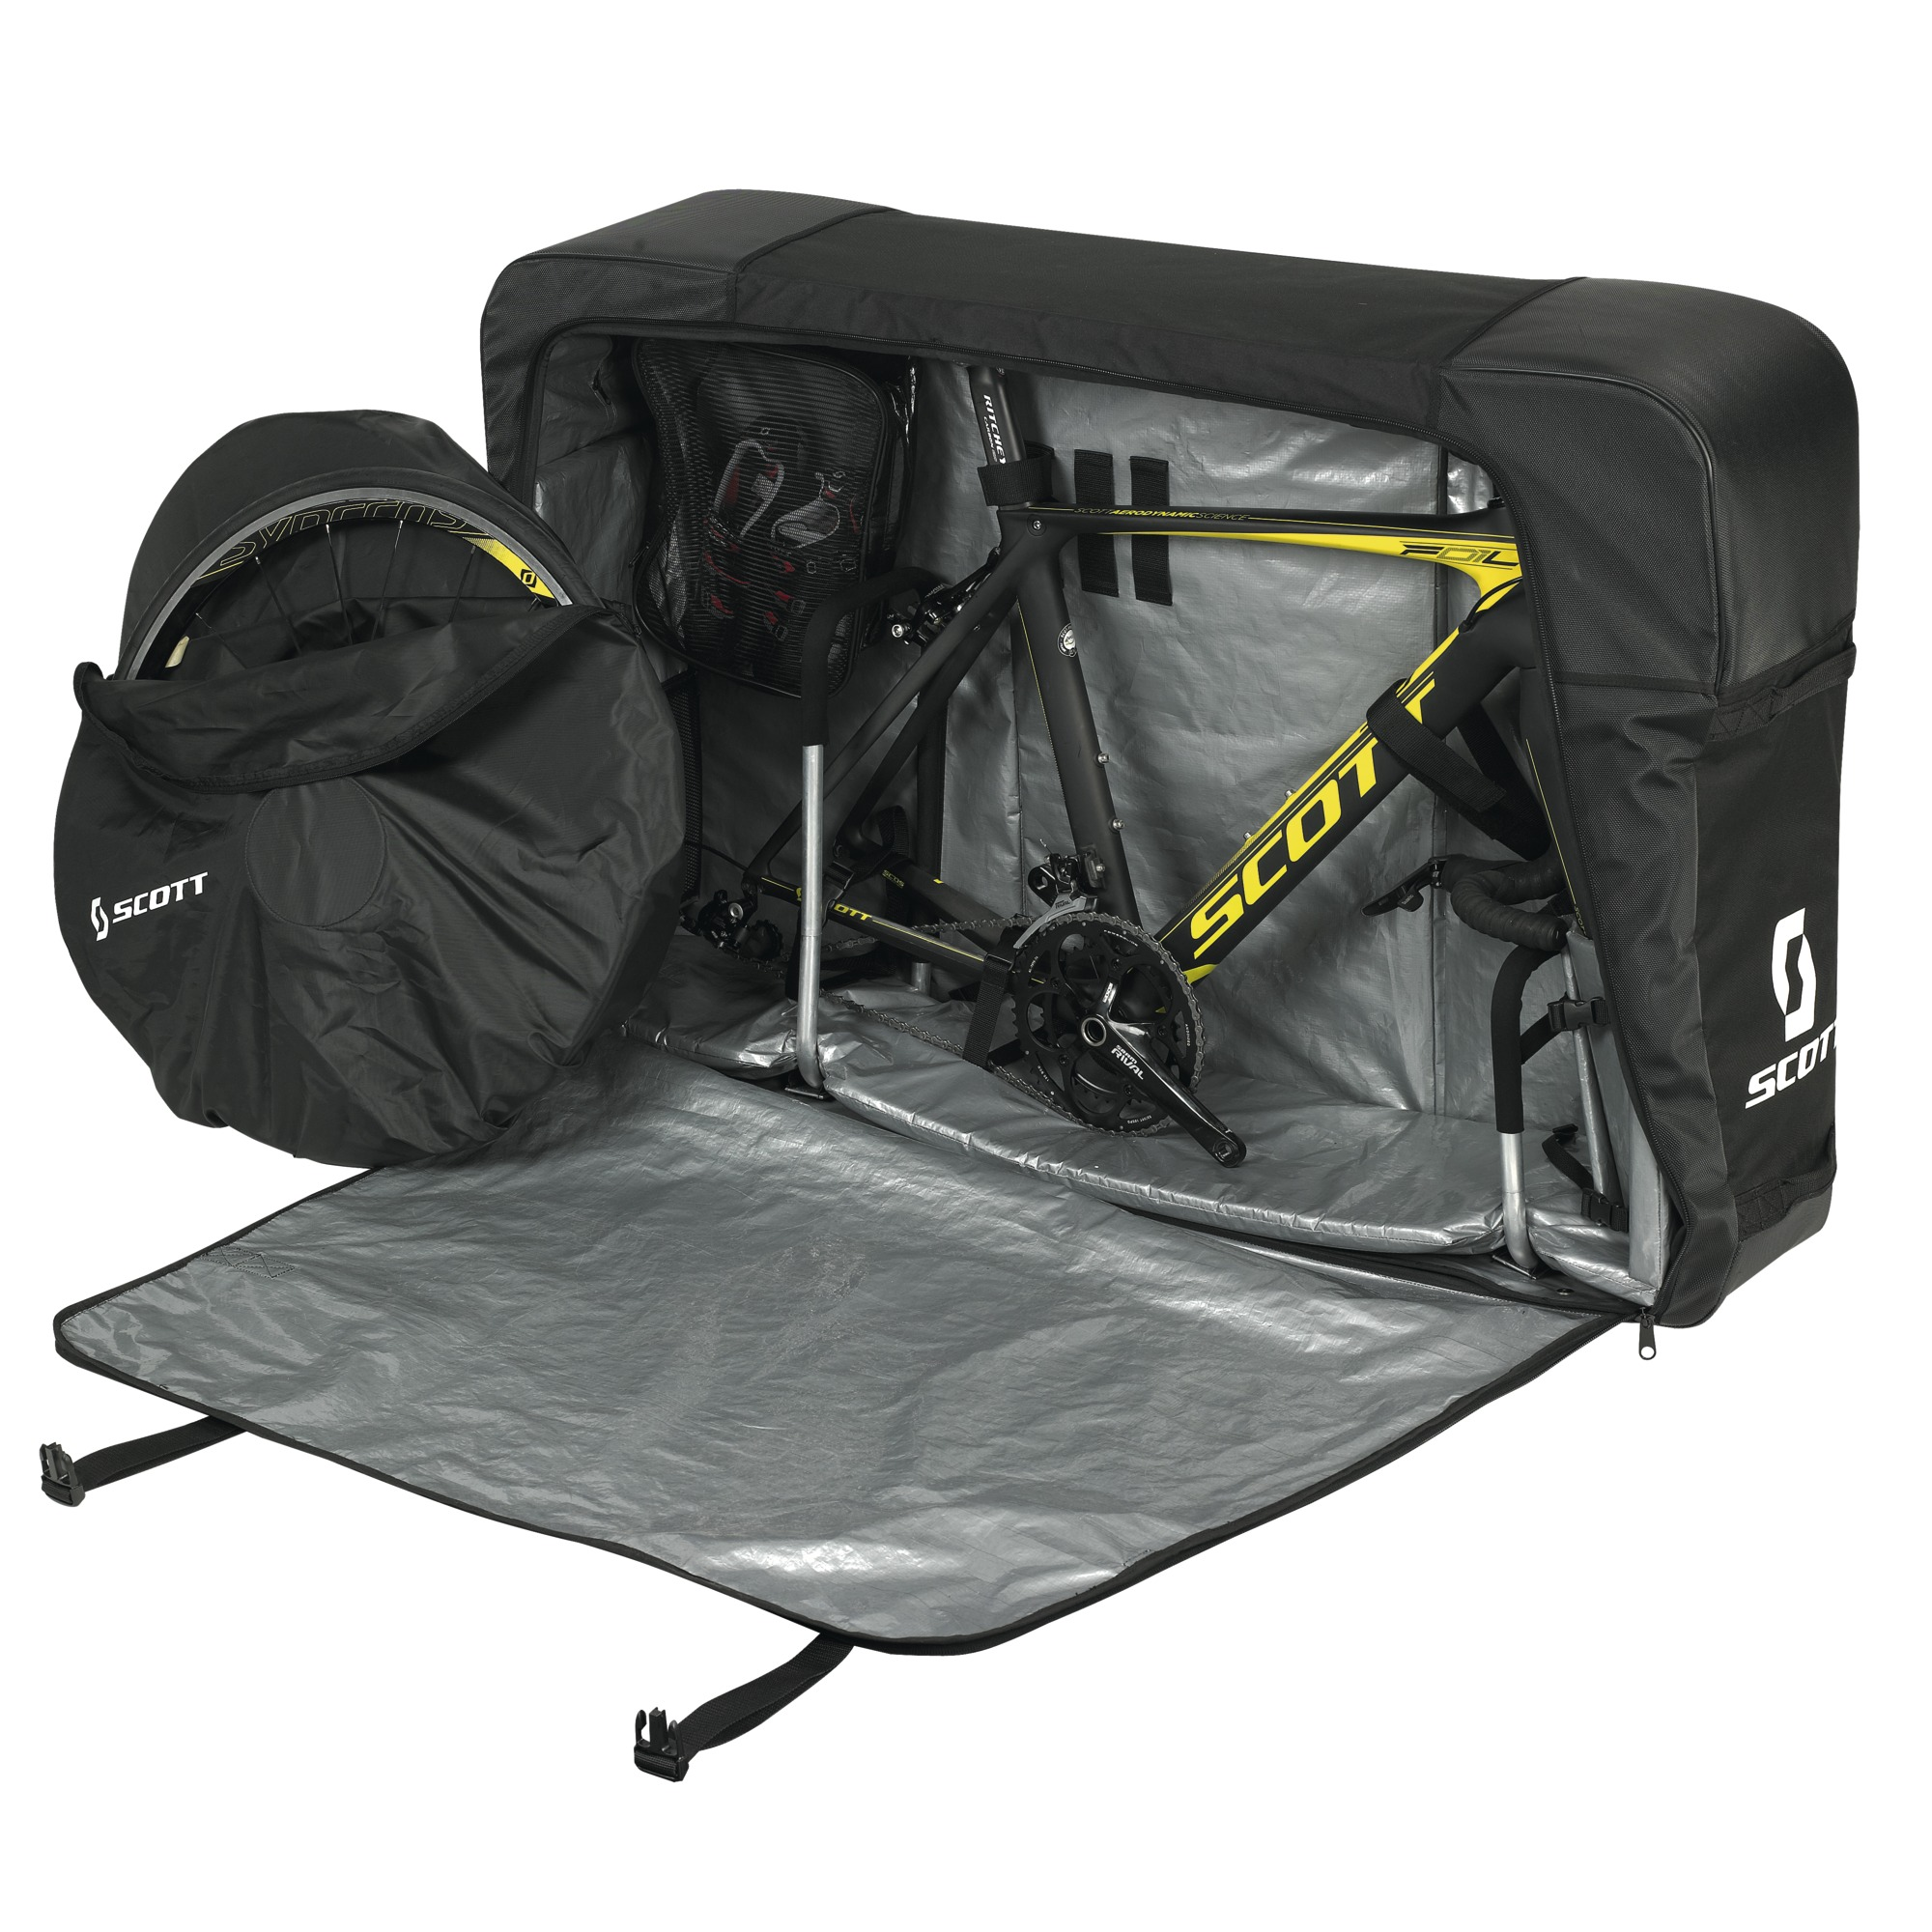 Bike transport bag premium for Housse vtt transport